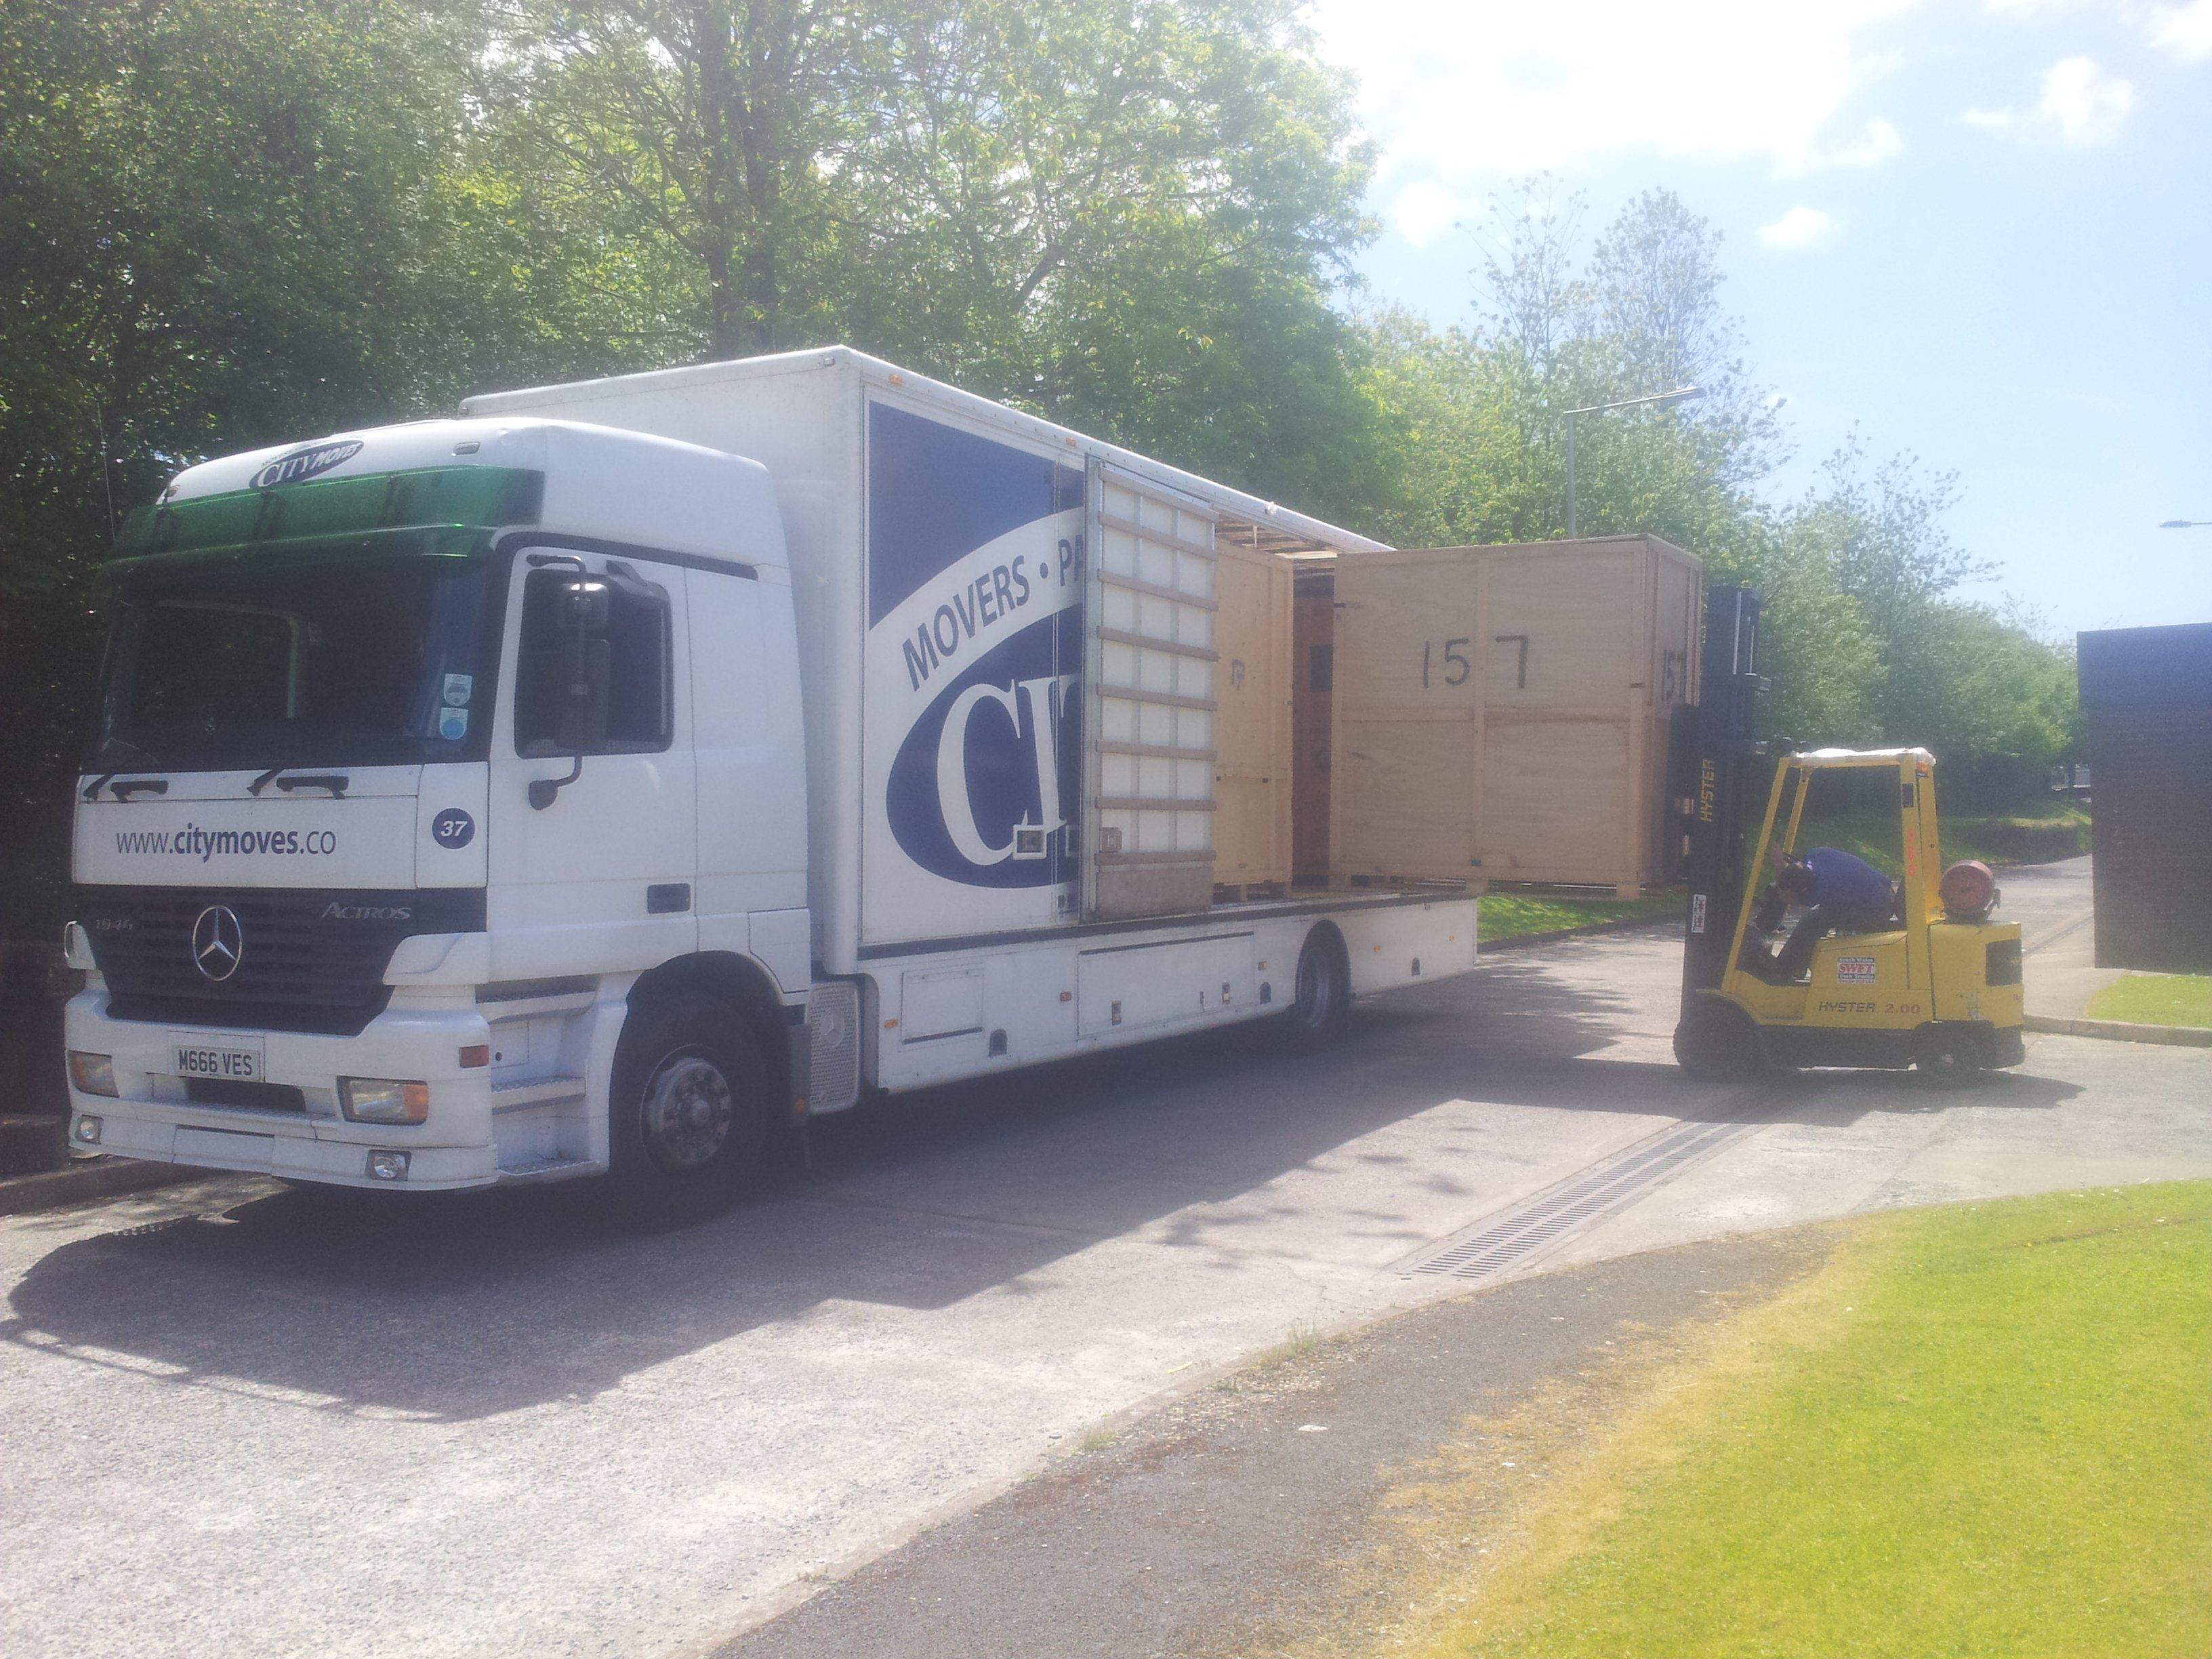 moving house - business moves - full packing - large house moves - small house moves - national relocations - international relocations - relocation services - local removal company - storage - indoor storage facility - storage containers - container storage